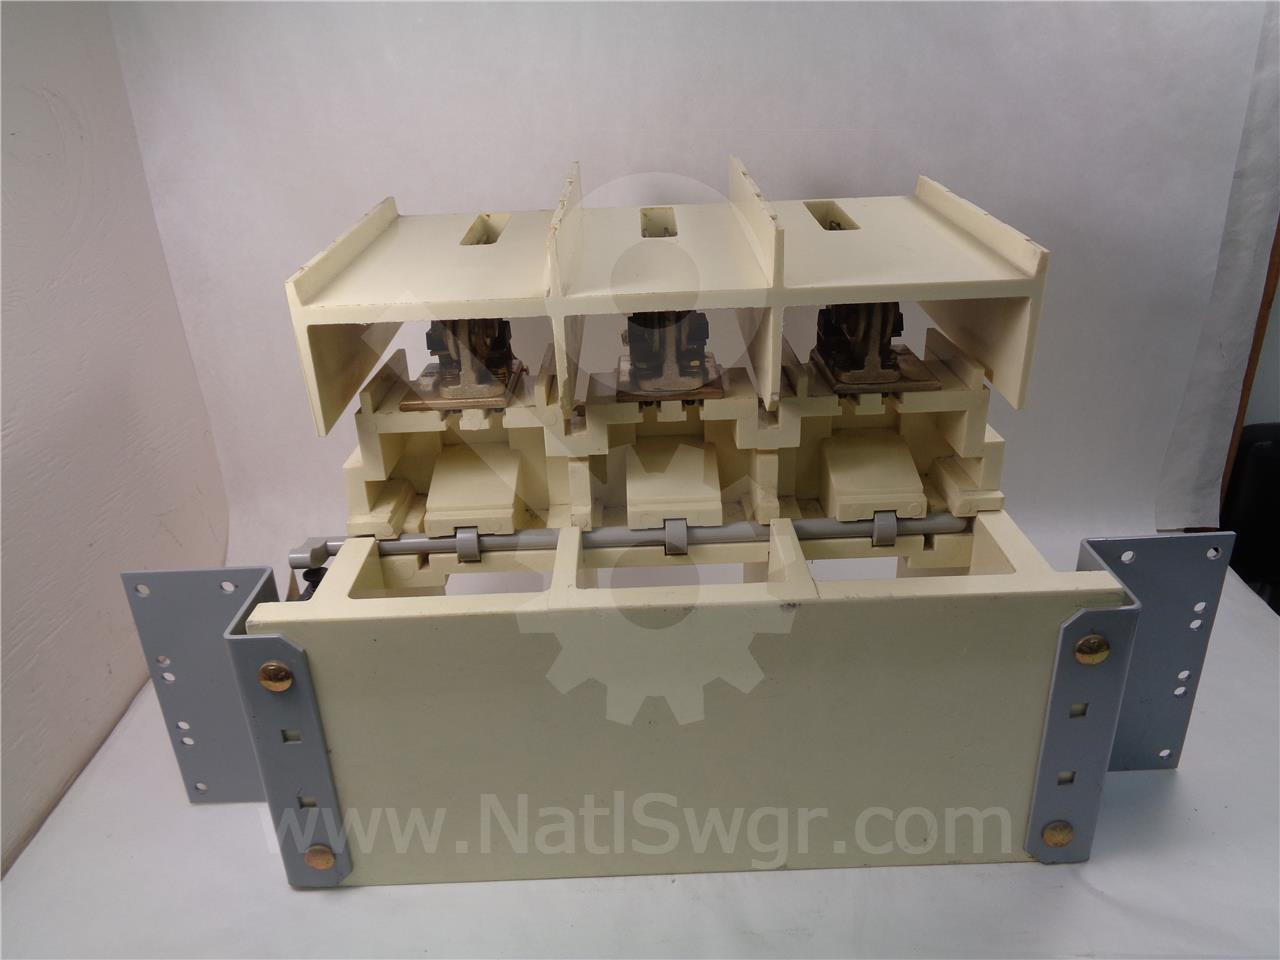 General Electric GE LIMITAMP QMQB ISOLATION SWITCH